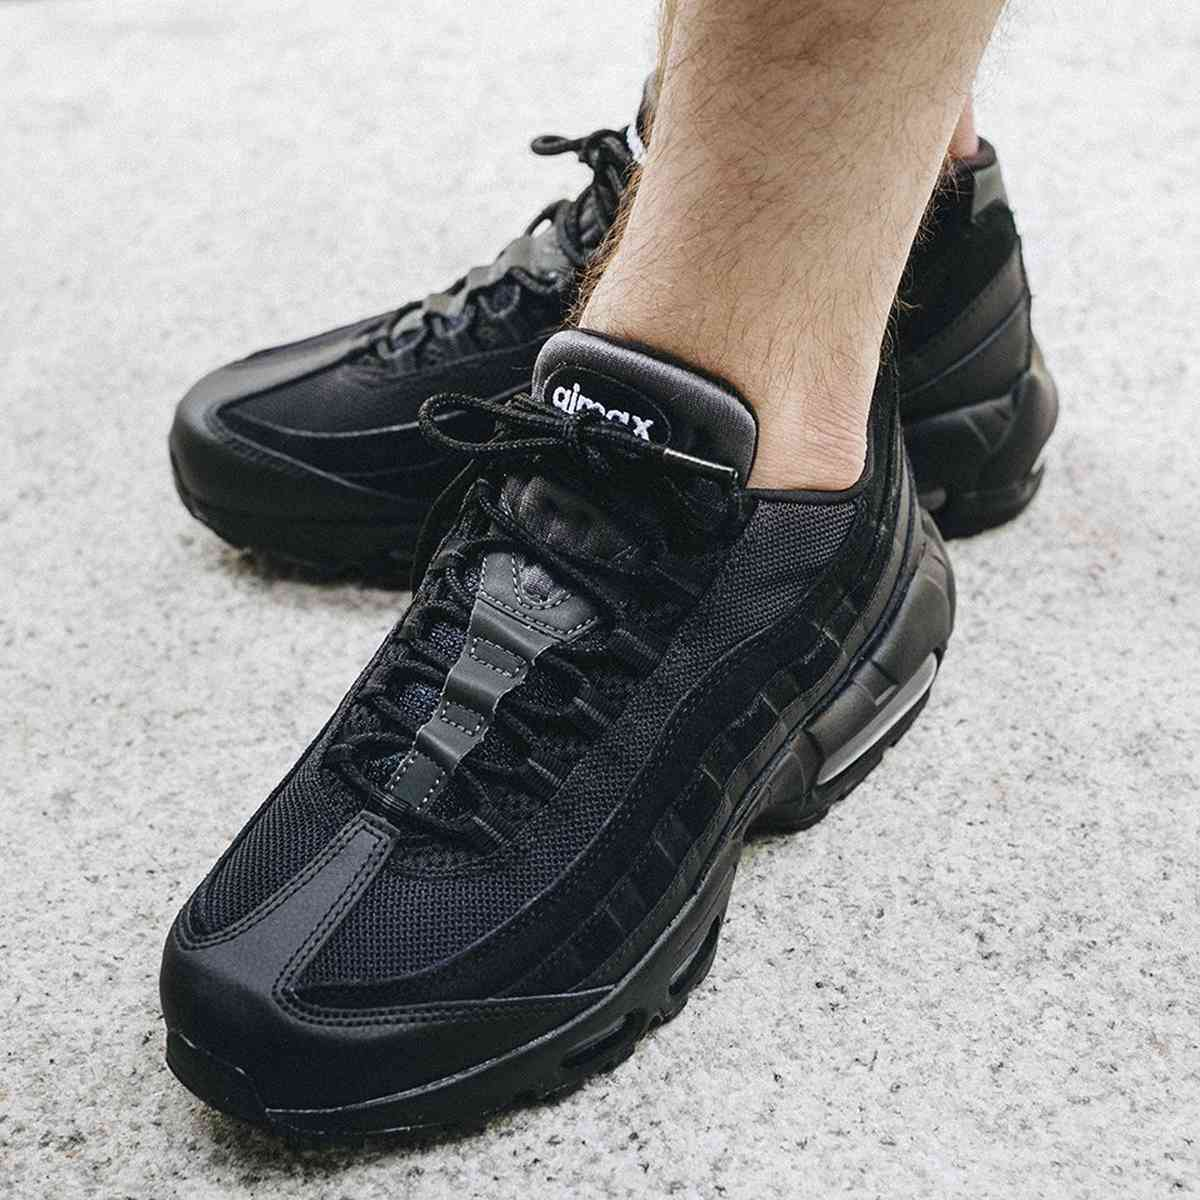 Nike Air Max 95 Essential At9865 001 5d1f1f8c9ec7e